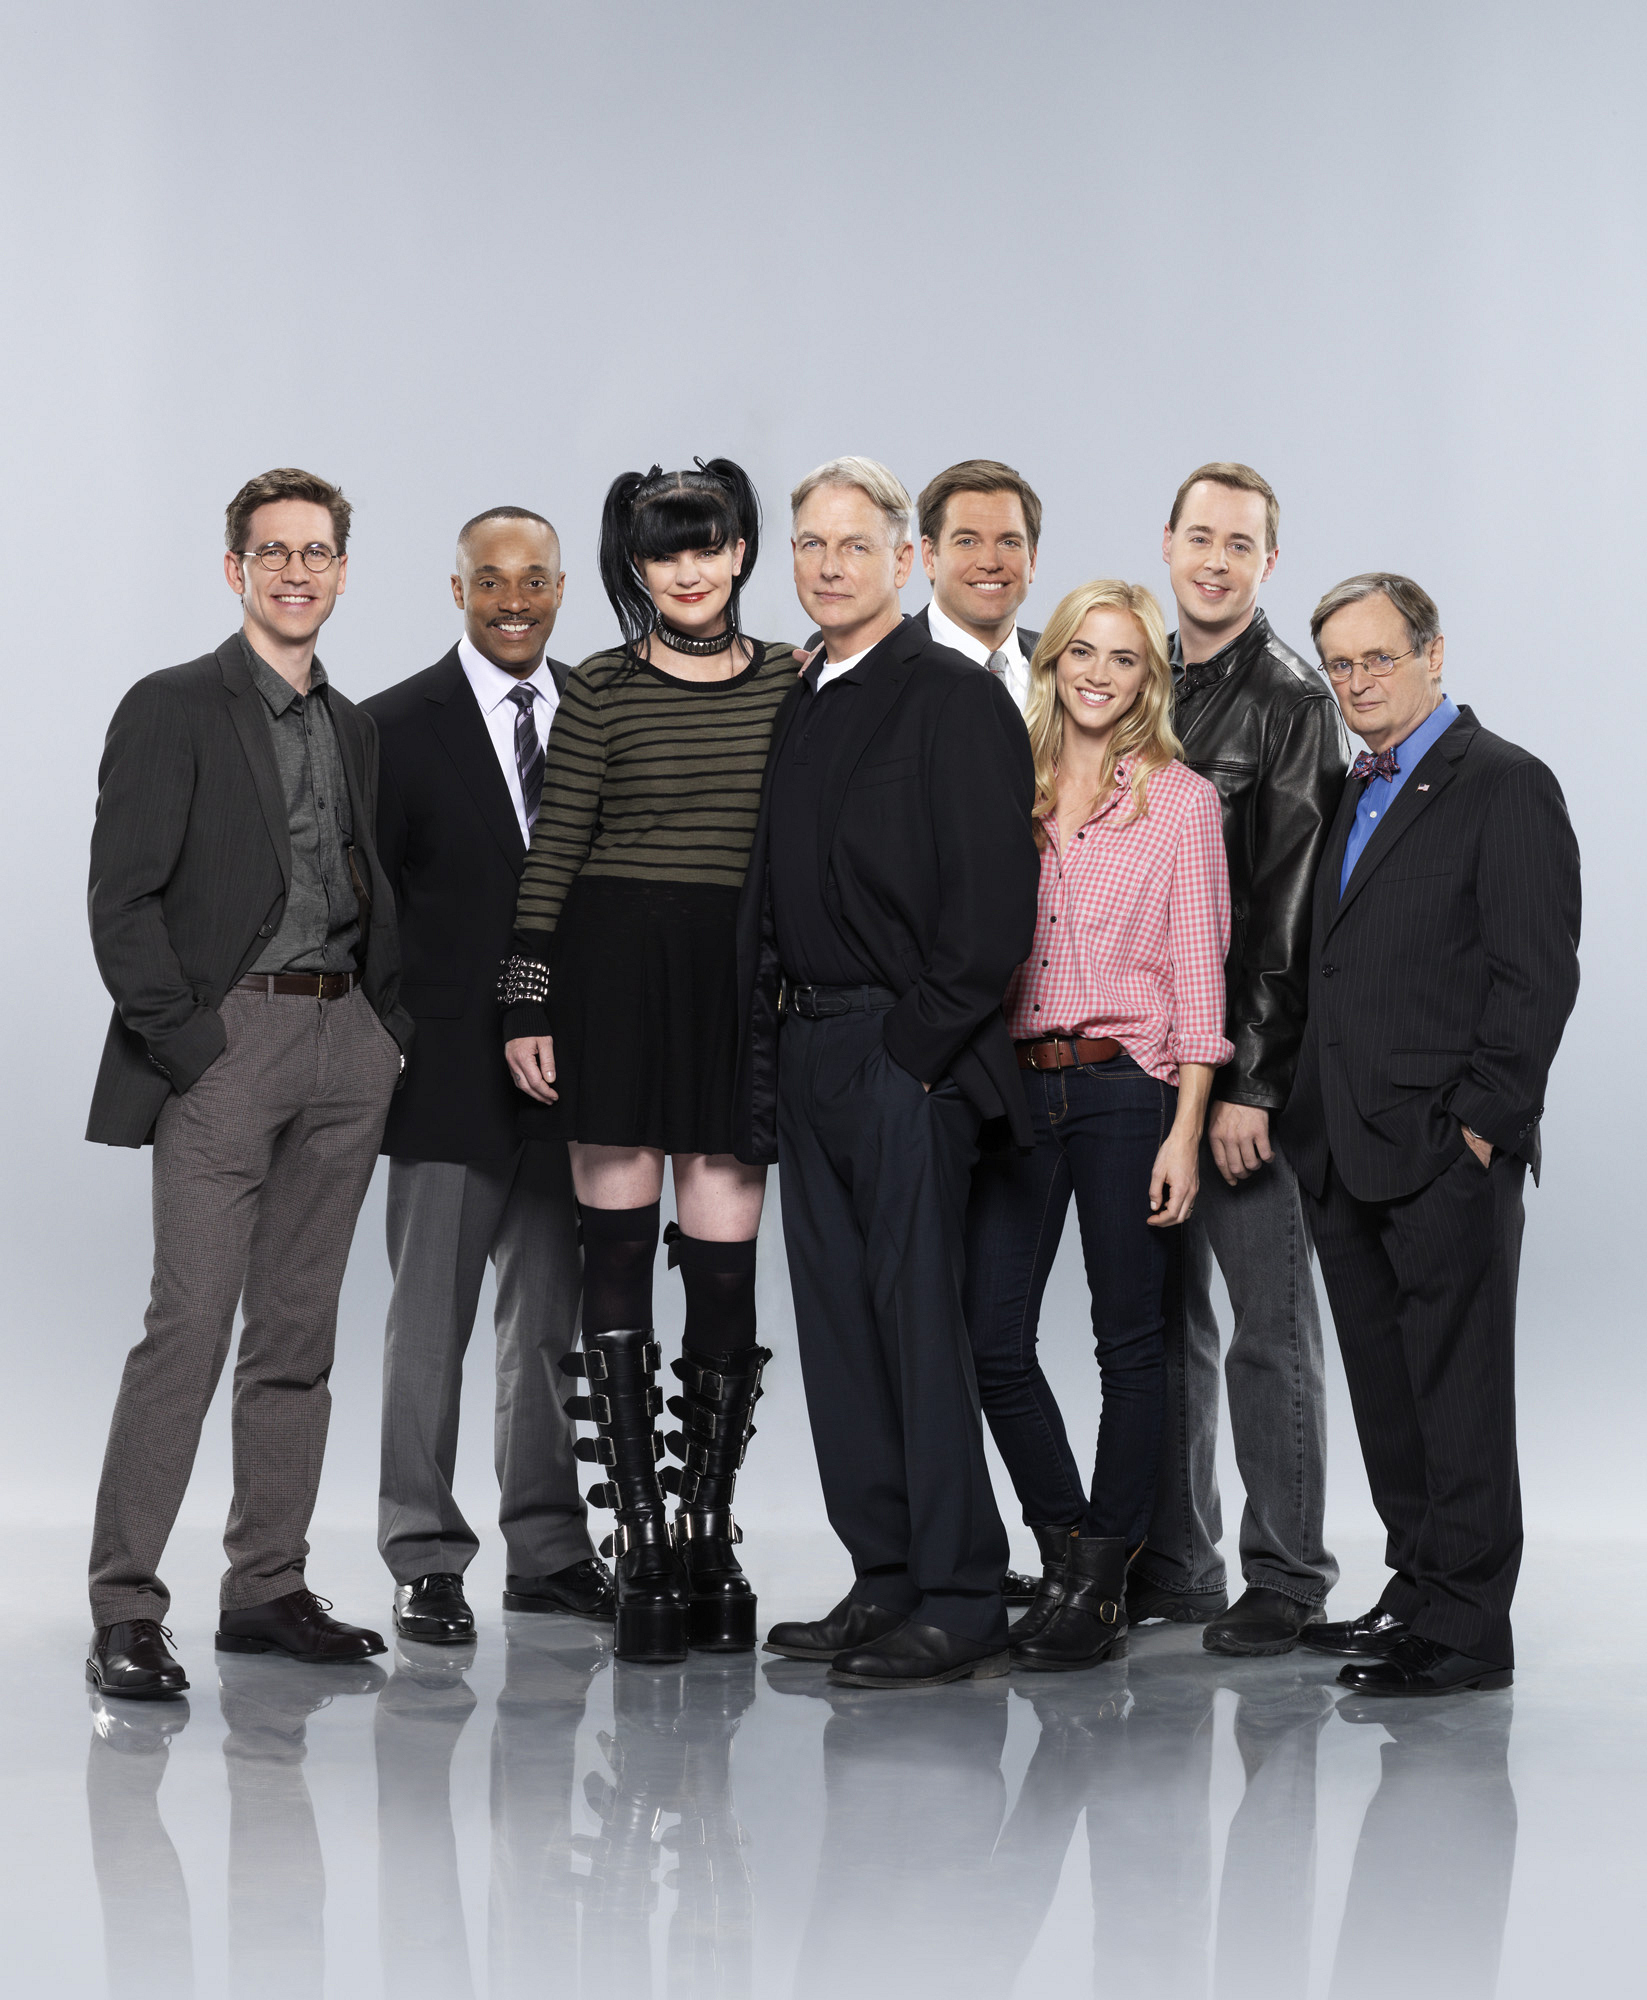 NCIS Season 11 Cast Photo